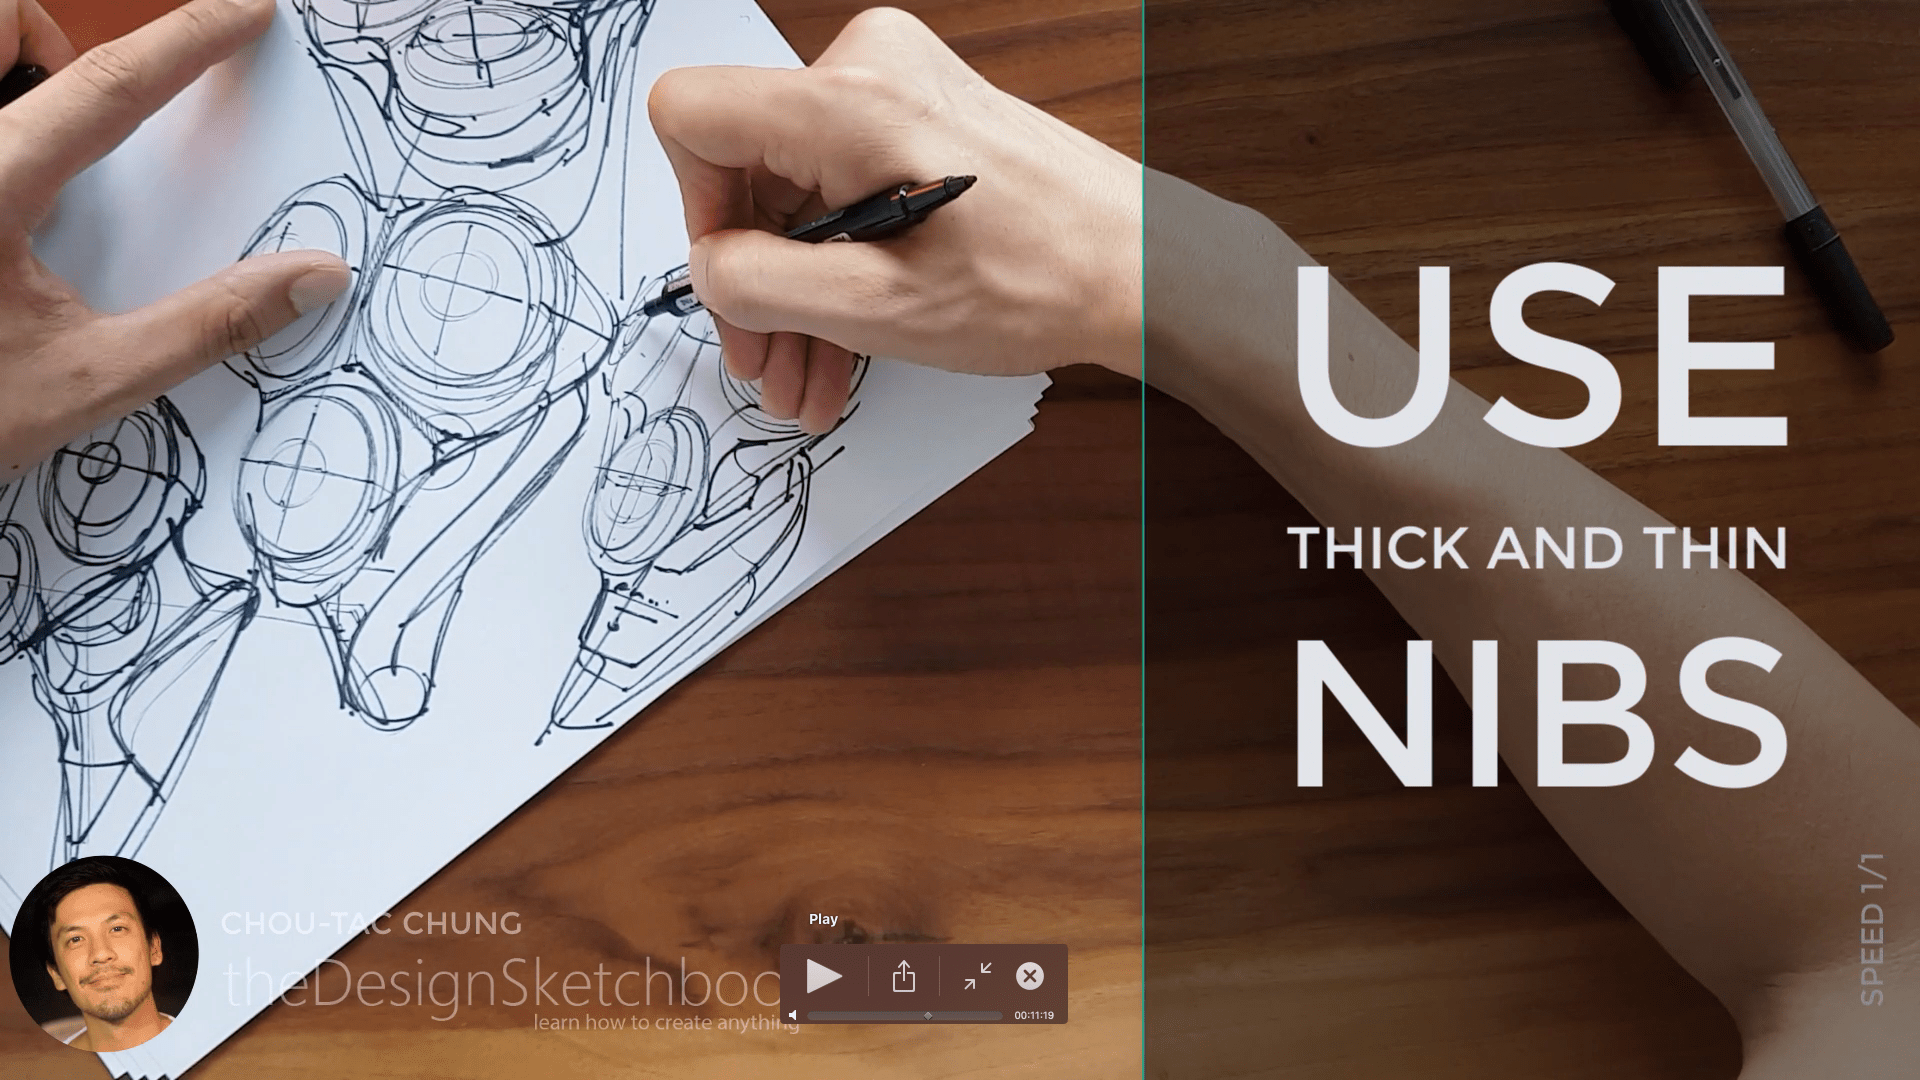 Sketching an electric shaver PHILIPS with the pilot twin marker pen - the design sketchbook - chung chou tac f1